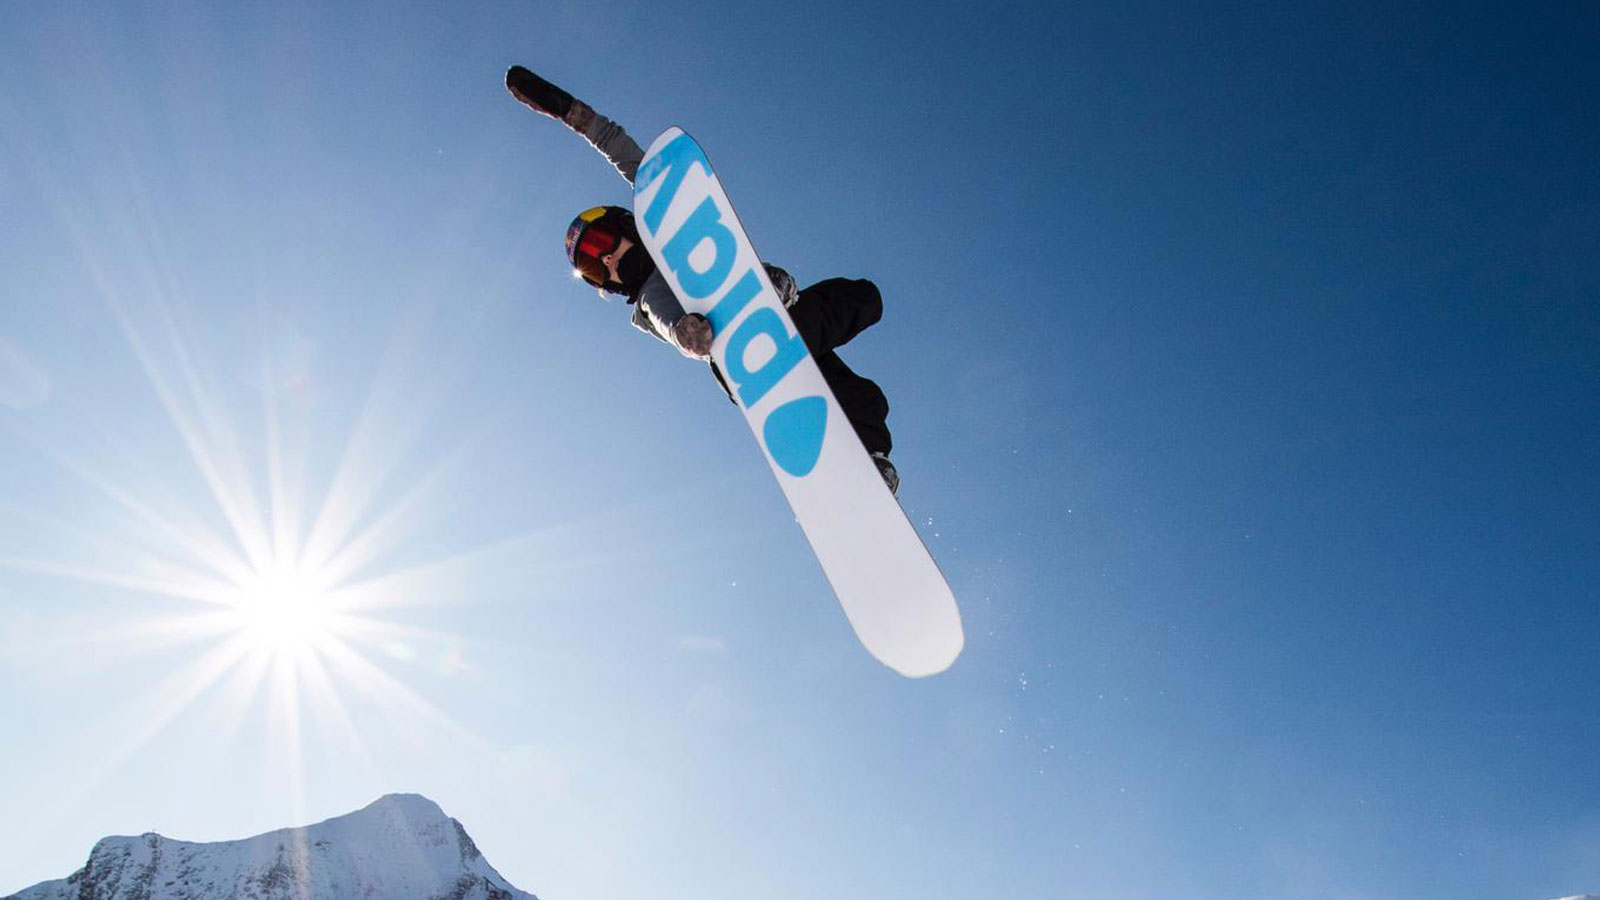 Play FW20/21 Snowboard Preview